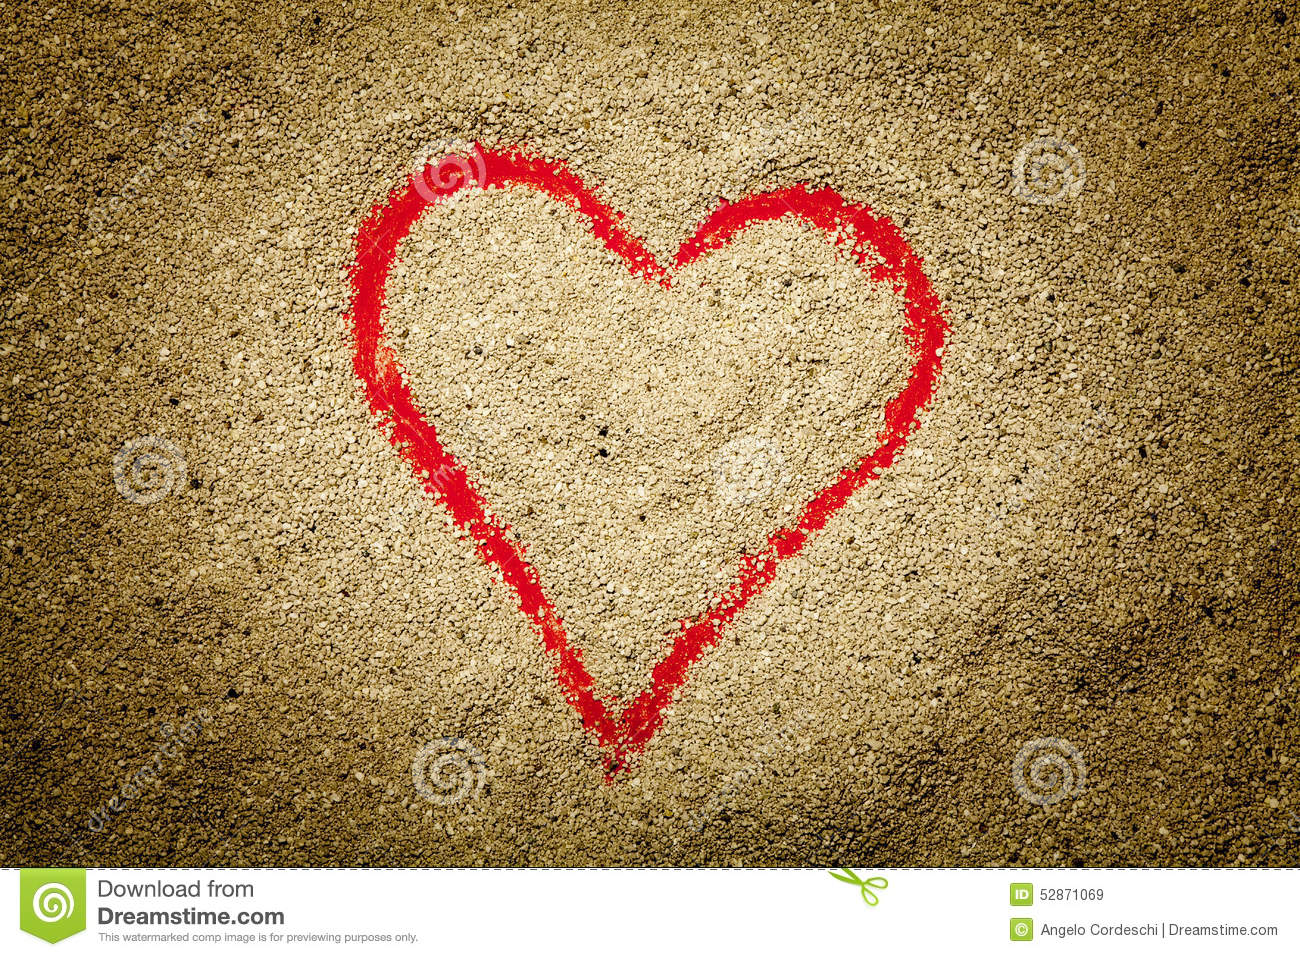 Red heart drawn in the sand